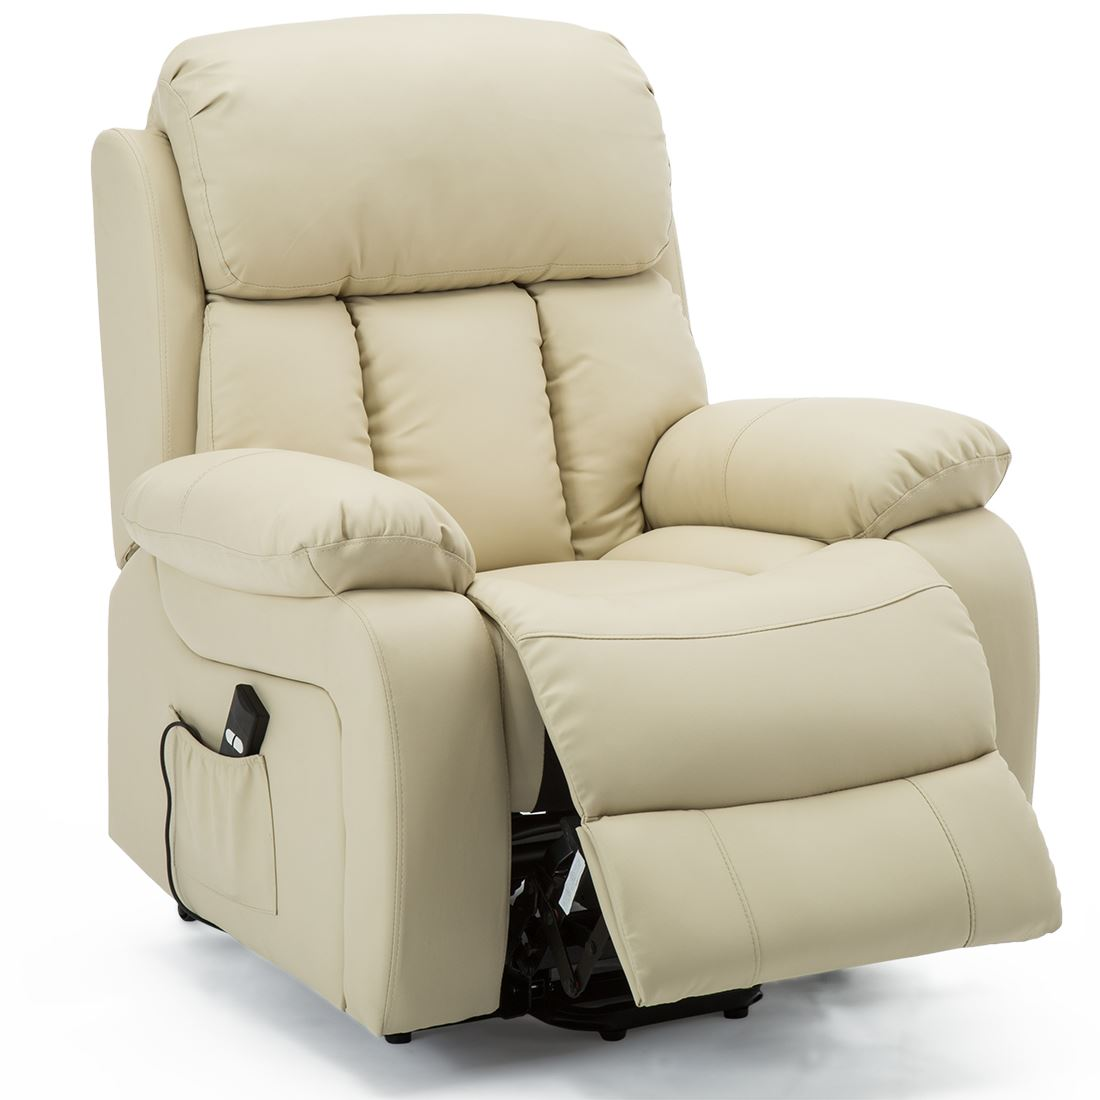 CHESTER-ELECTRIC-RISE-LEATHER-RECLINER-POWER-ARMCHAIR-HEATED-MASSAGE-SOFA-CHAIR thumbnail 22